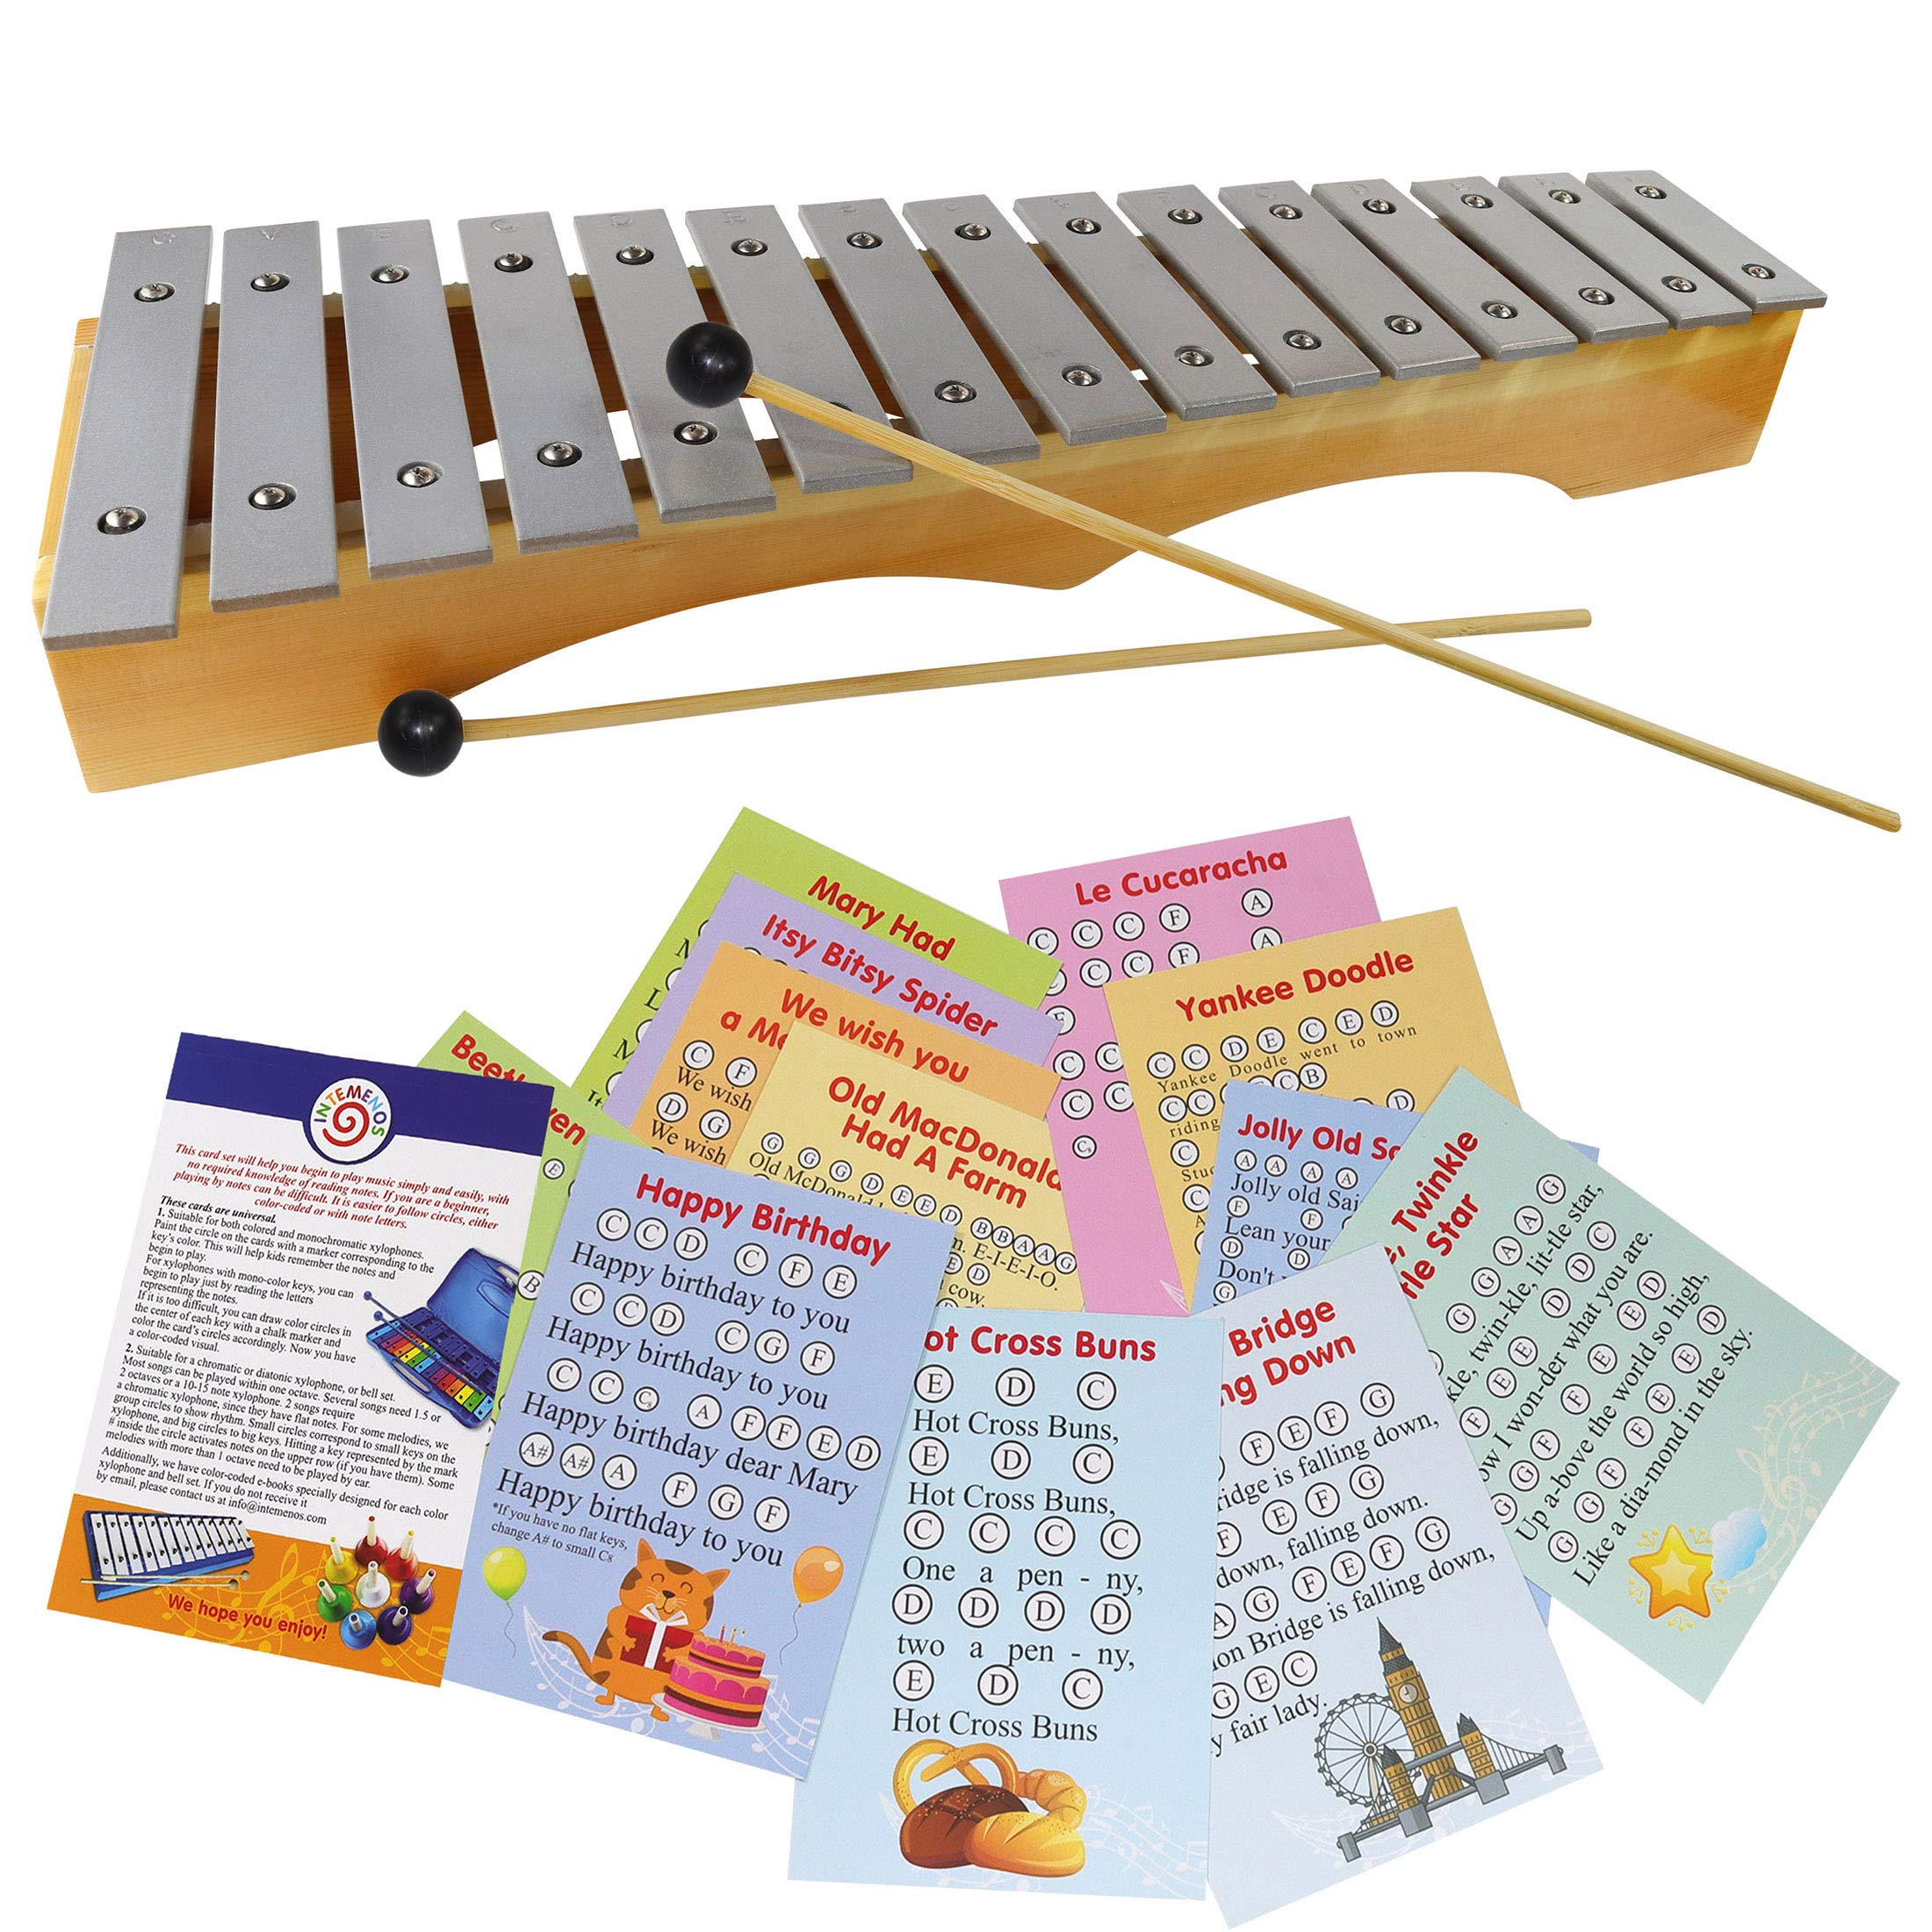 Xylophone for Adults - Professional Diatonic Glockenspiel - Perl Bell Kit Metallophone